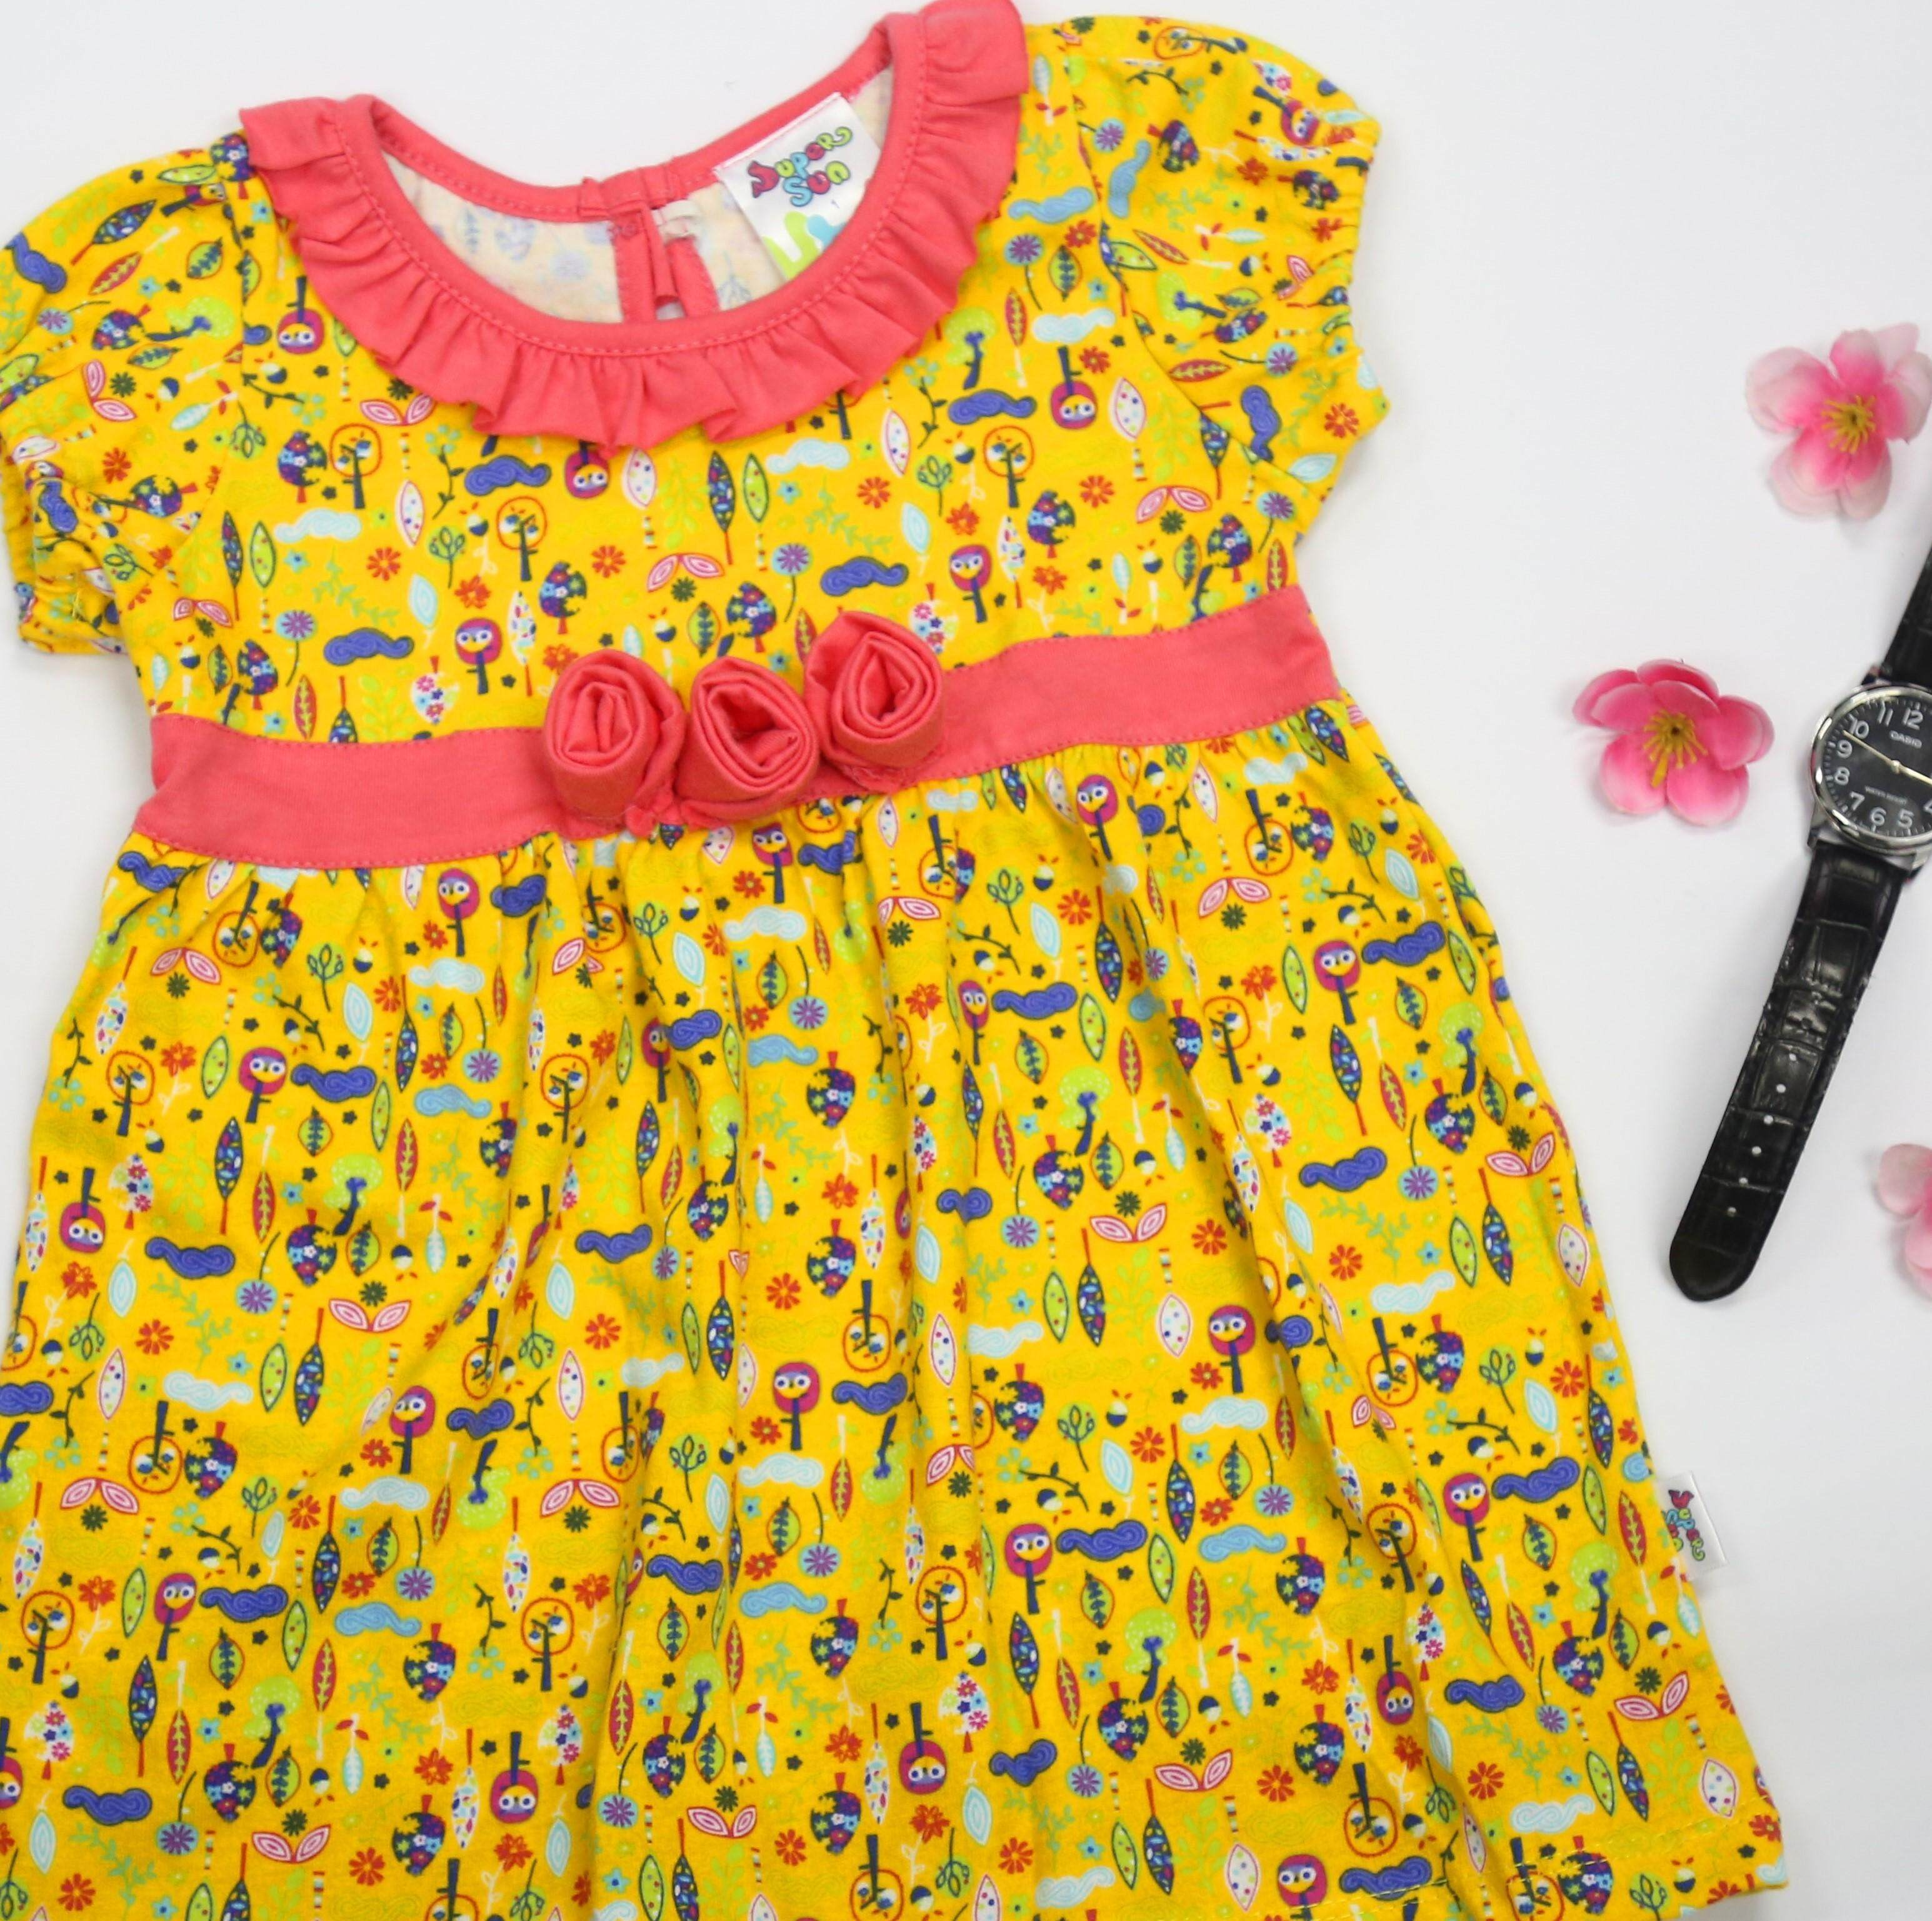 Supersun Toddler Girl Dress Summer Fashion Clothes GD-31 yellow.